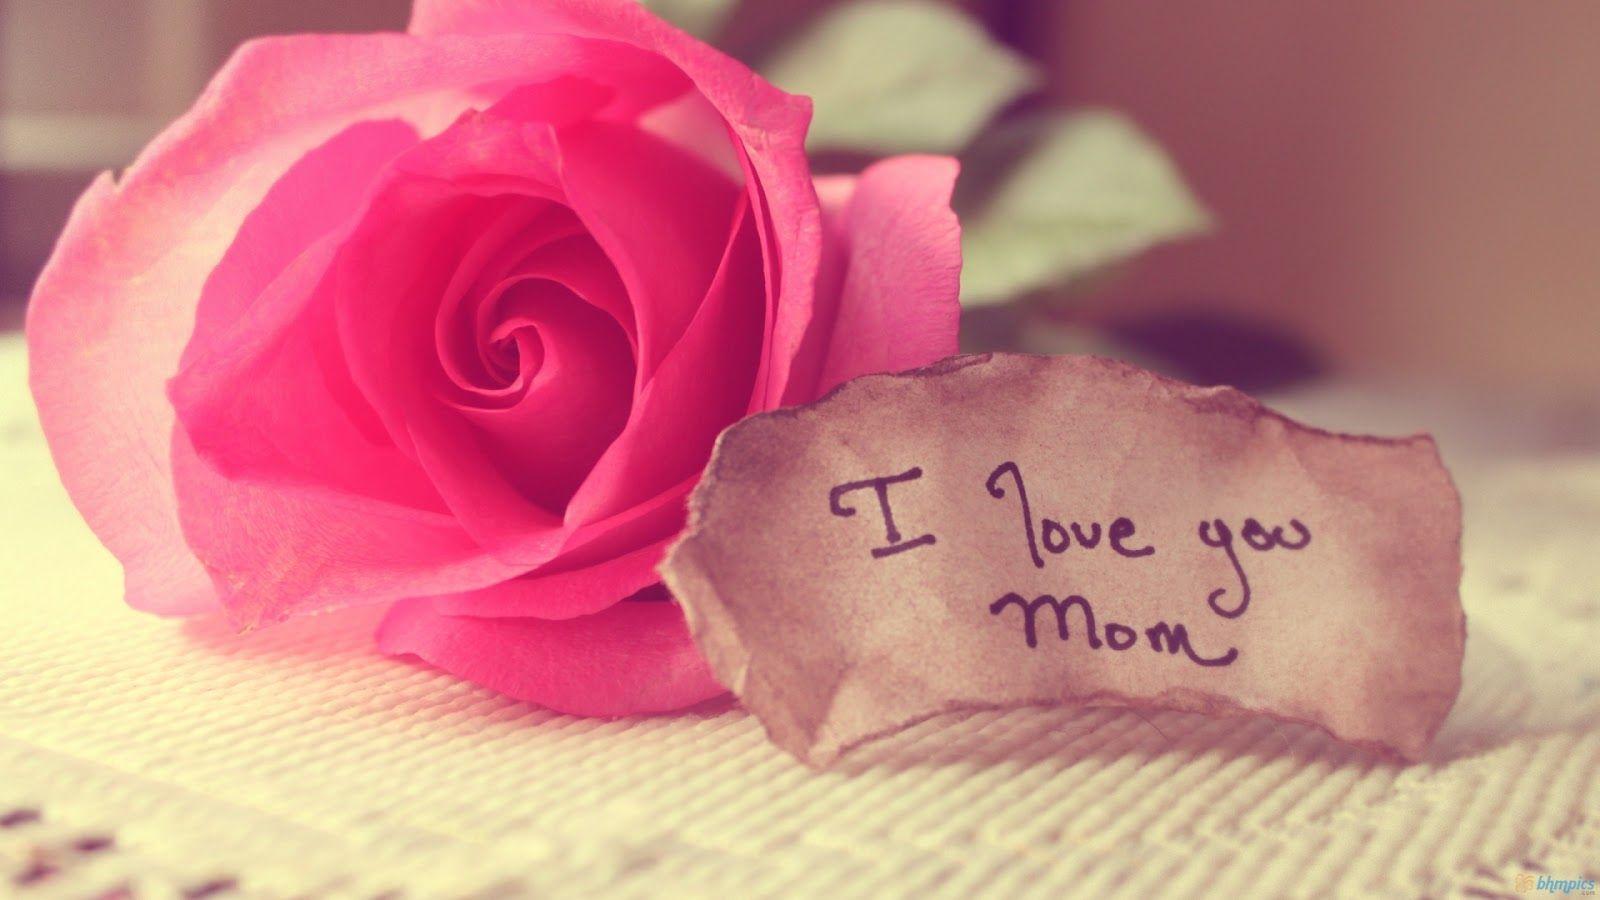 i love my mom wallpapers wallpaper cave